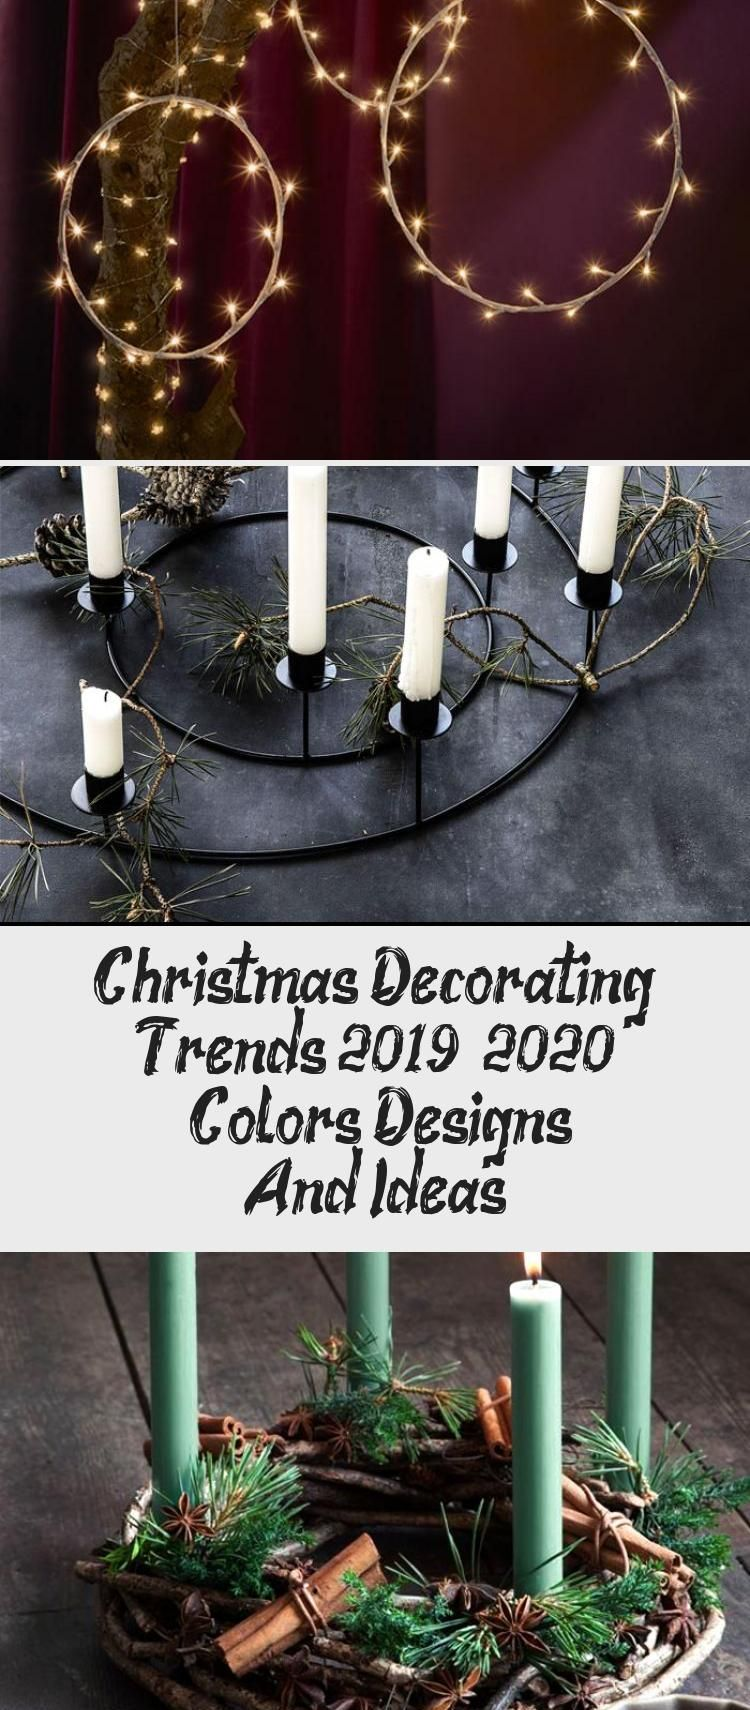 Christmas Decorating Trends 2019 / 2020 Colors, Designs